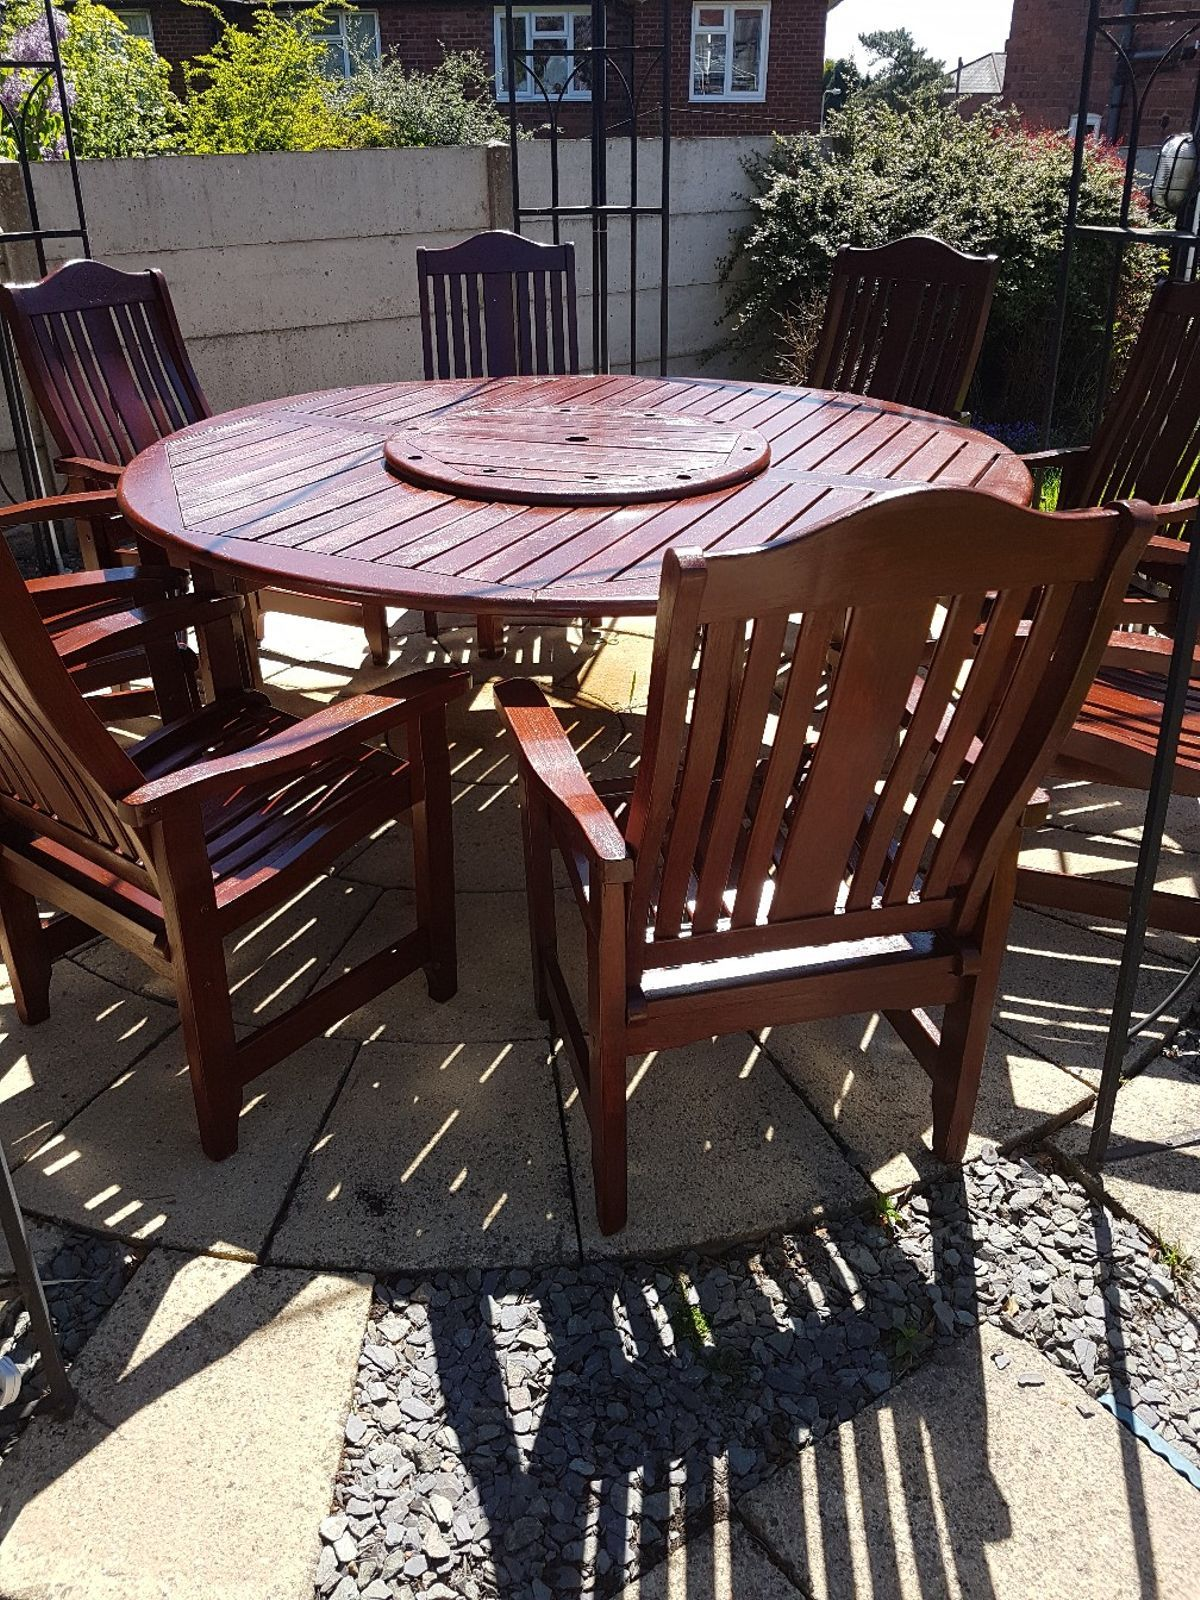 Large Round Wooden Garden Table And Chairs Feels Free To Follow Us In 2020 Wooden Garden Table Garden Table And Chairs Garden Table